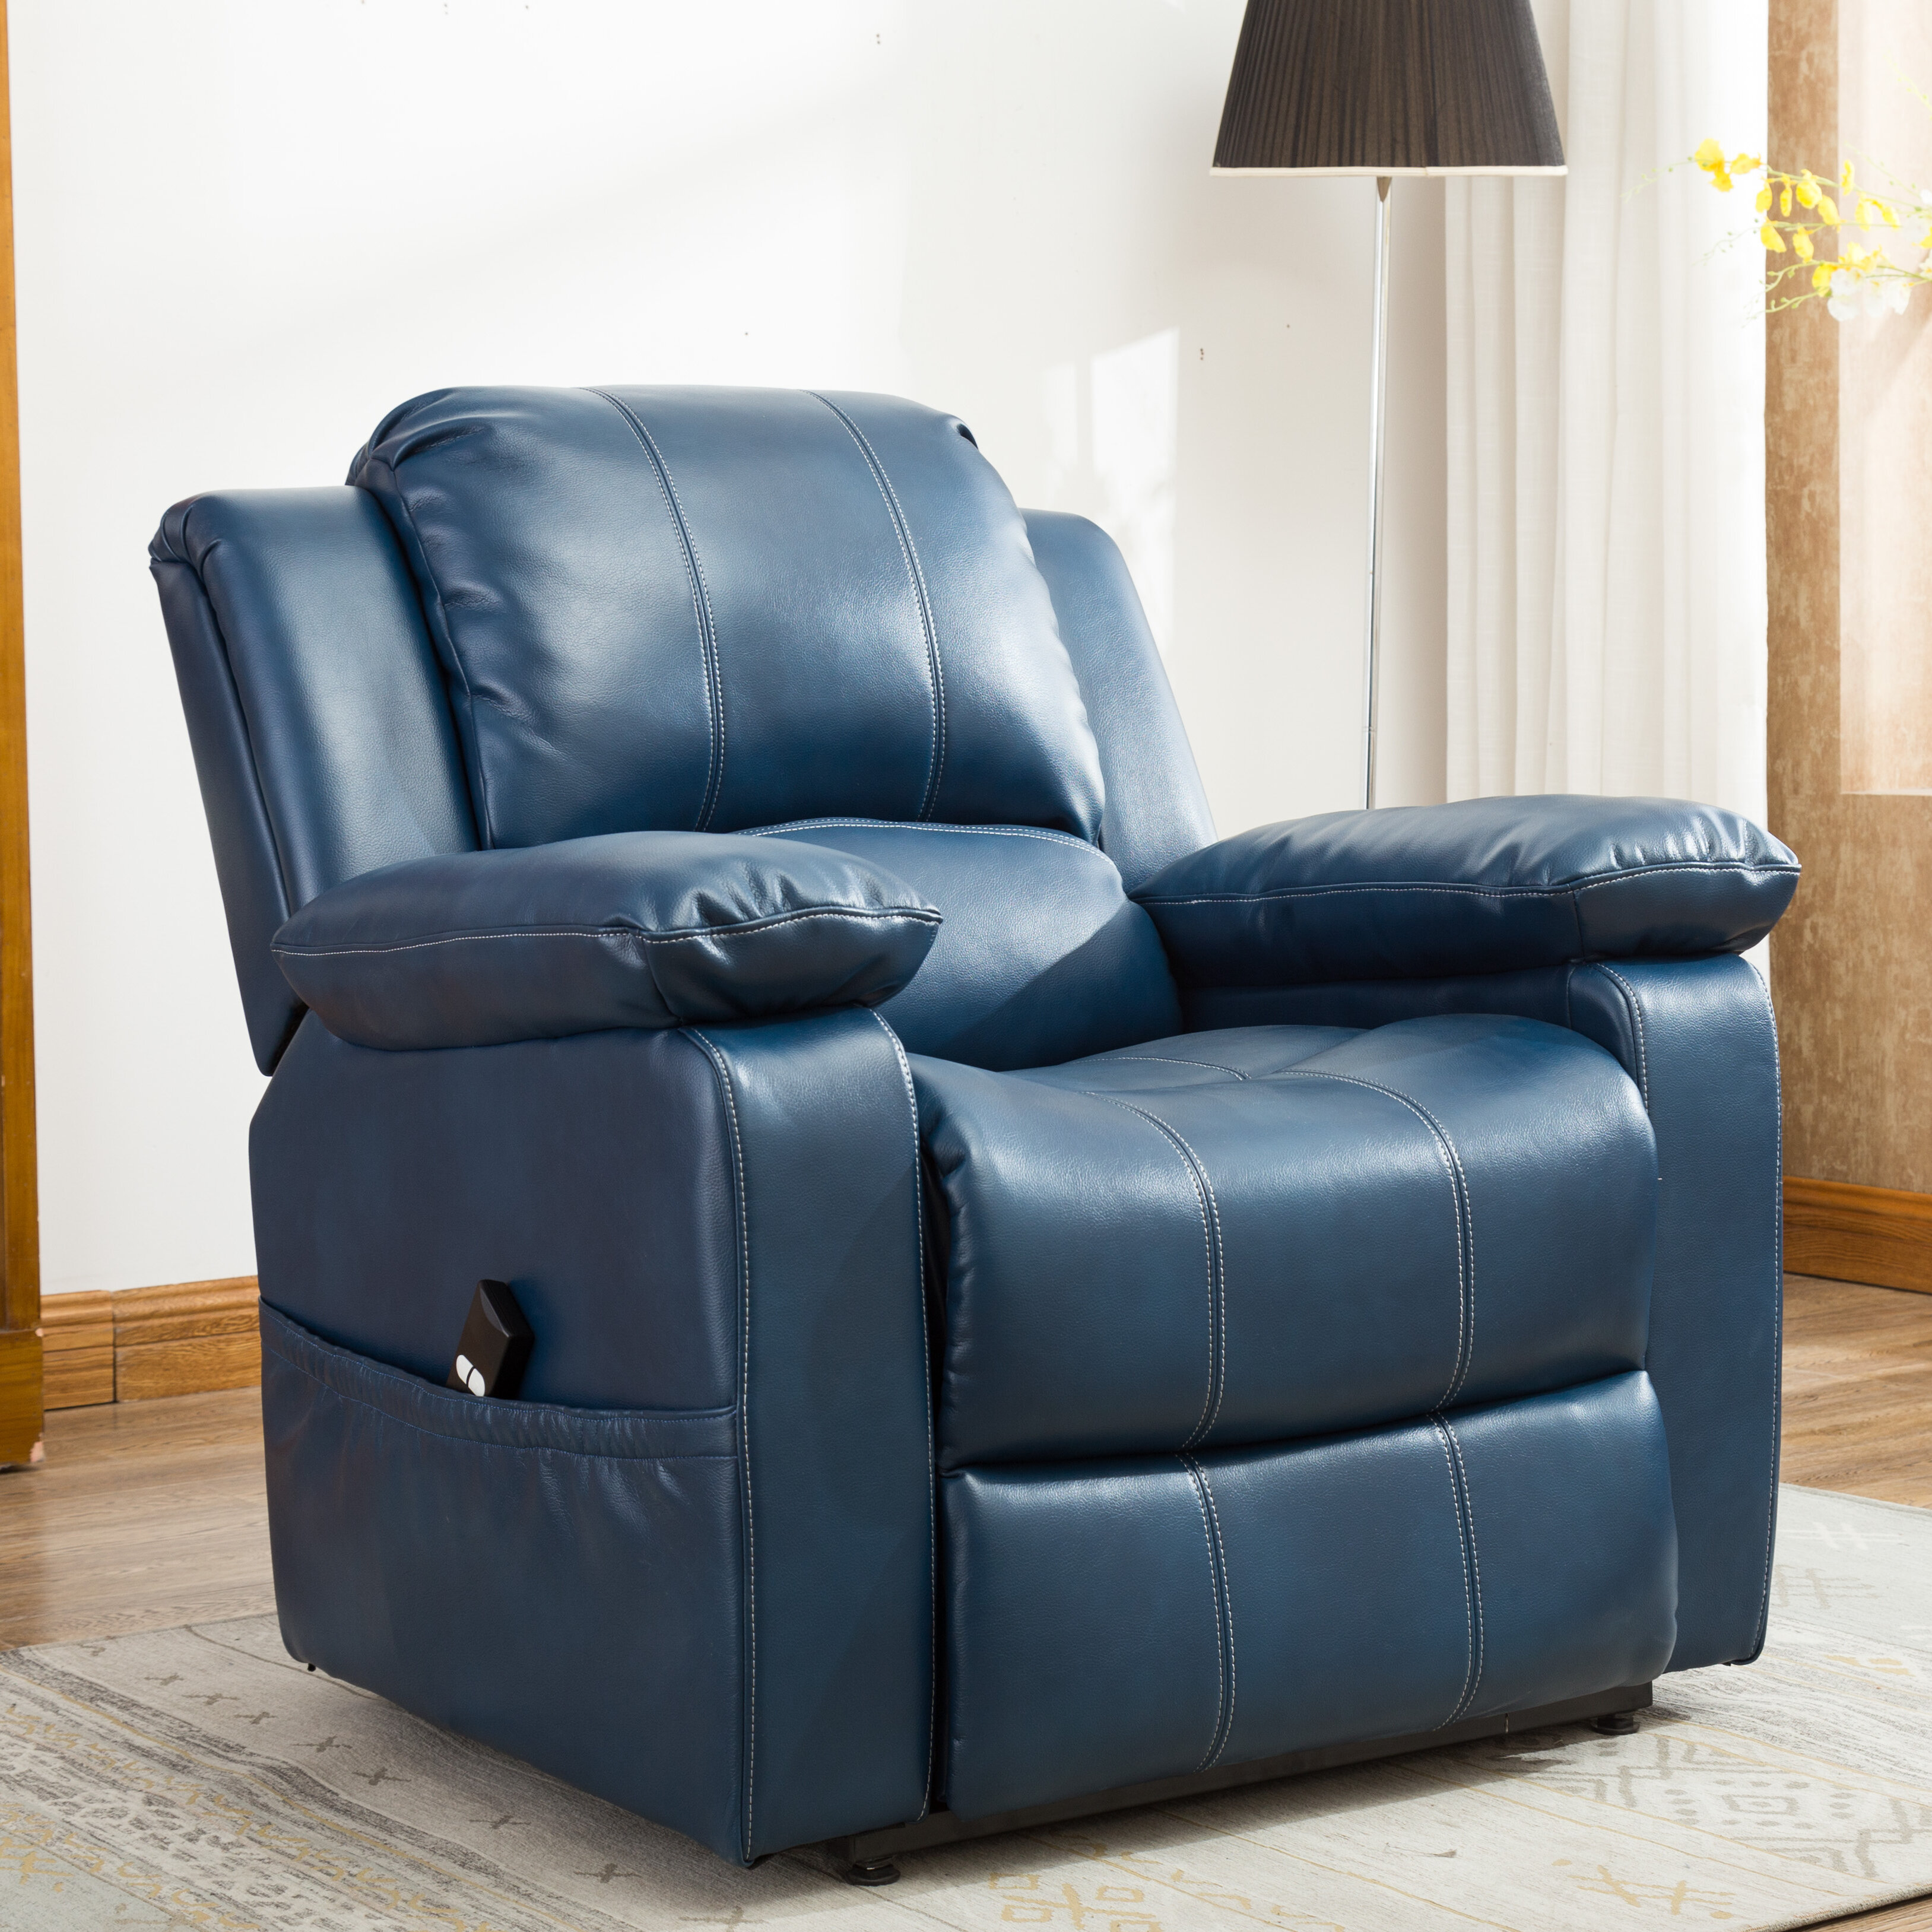 Red Barrel Studio Connolly Faux Leather Power Lift Assist Recliner Reviews Wayfair Ca